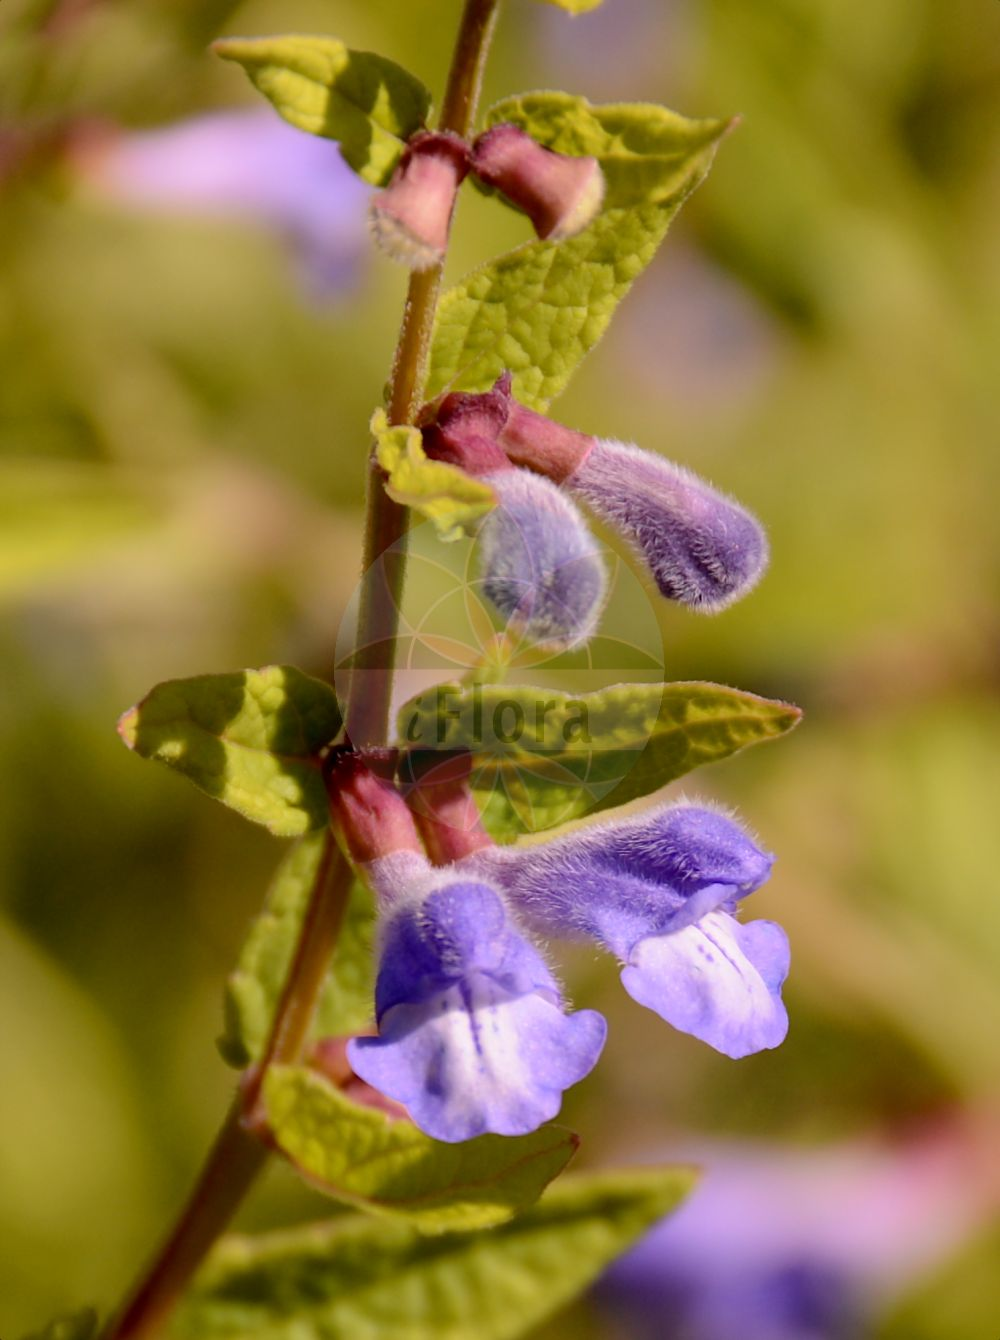 Foto von Scutellaria galericulata (Sumpf-Helmkraut - Skullcap). Das Bild zeigt Blatt und Bluete. Das Foto wurde in Mainz, Rheinland-Pfalz, Deutschland aufgenommen. ---- Photo of Scutellaria galericulata (Sumpf-Helmkraut - Skullcap).The image is showing leaf and flower.The picture was taken in Mainz, Rhineland-Palatinate, Germany.(Scutellaria galericulata,Sumpf-Helmkraut,Skullcap,Cassida galericulata,Cassida major,Scutellaria adamsii,Scutellaria epilobiifolia,Scutellaria pauciflora,Blue Common Marsh ,Scutellaria,Helmkraut,Skullcap,Lamiaceae,Lippenbluetengewaechse;Lippenbluetler,Nettle family,Blatt,Bluete,leaf,flower)